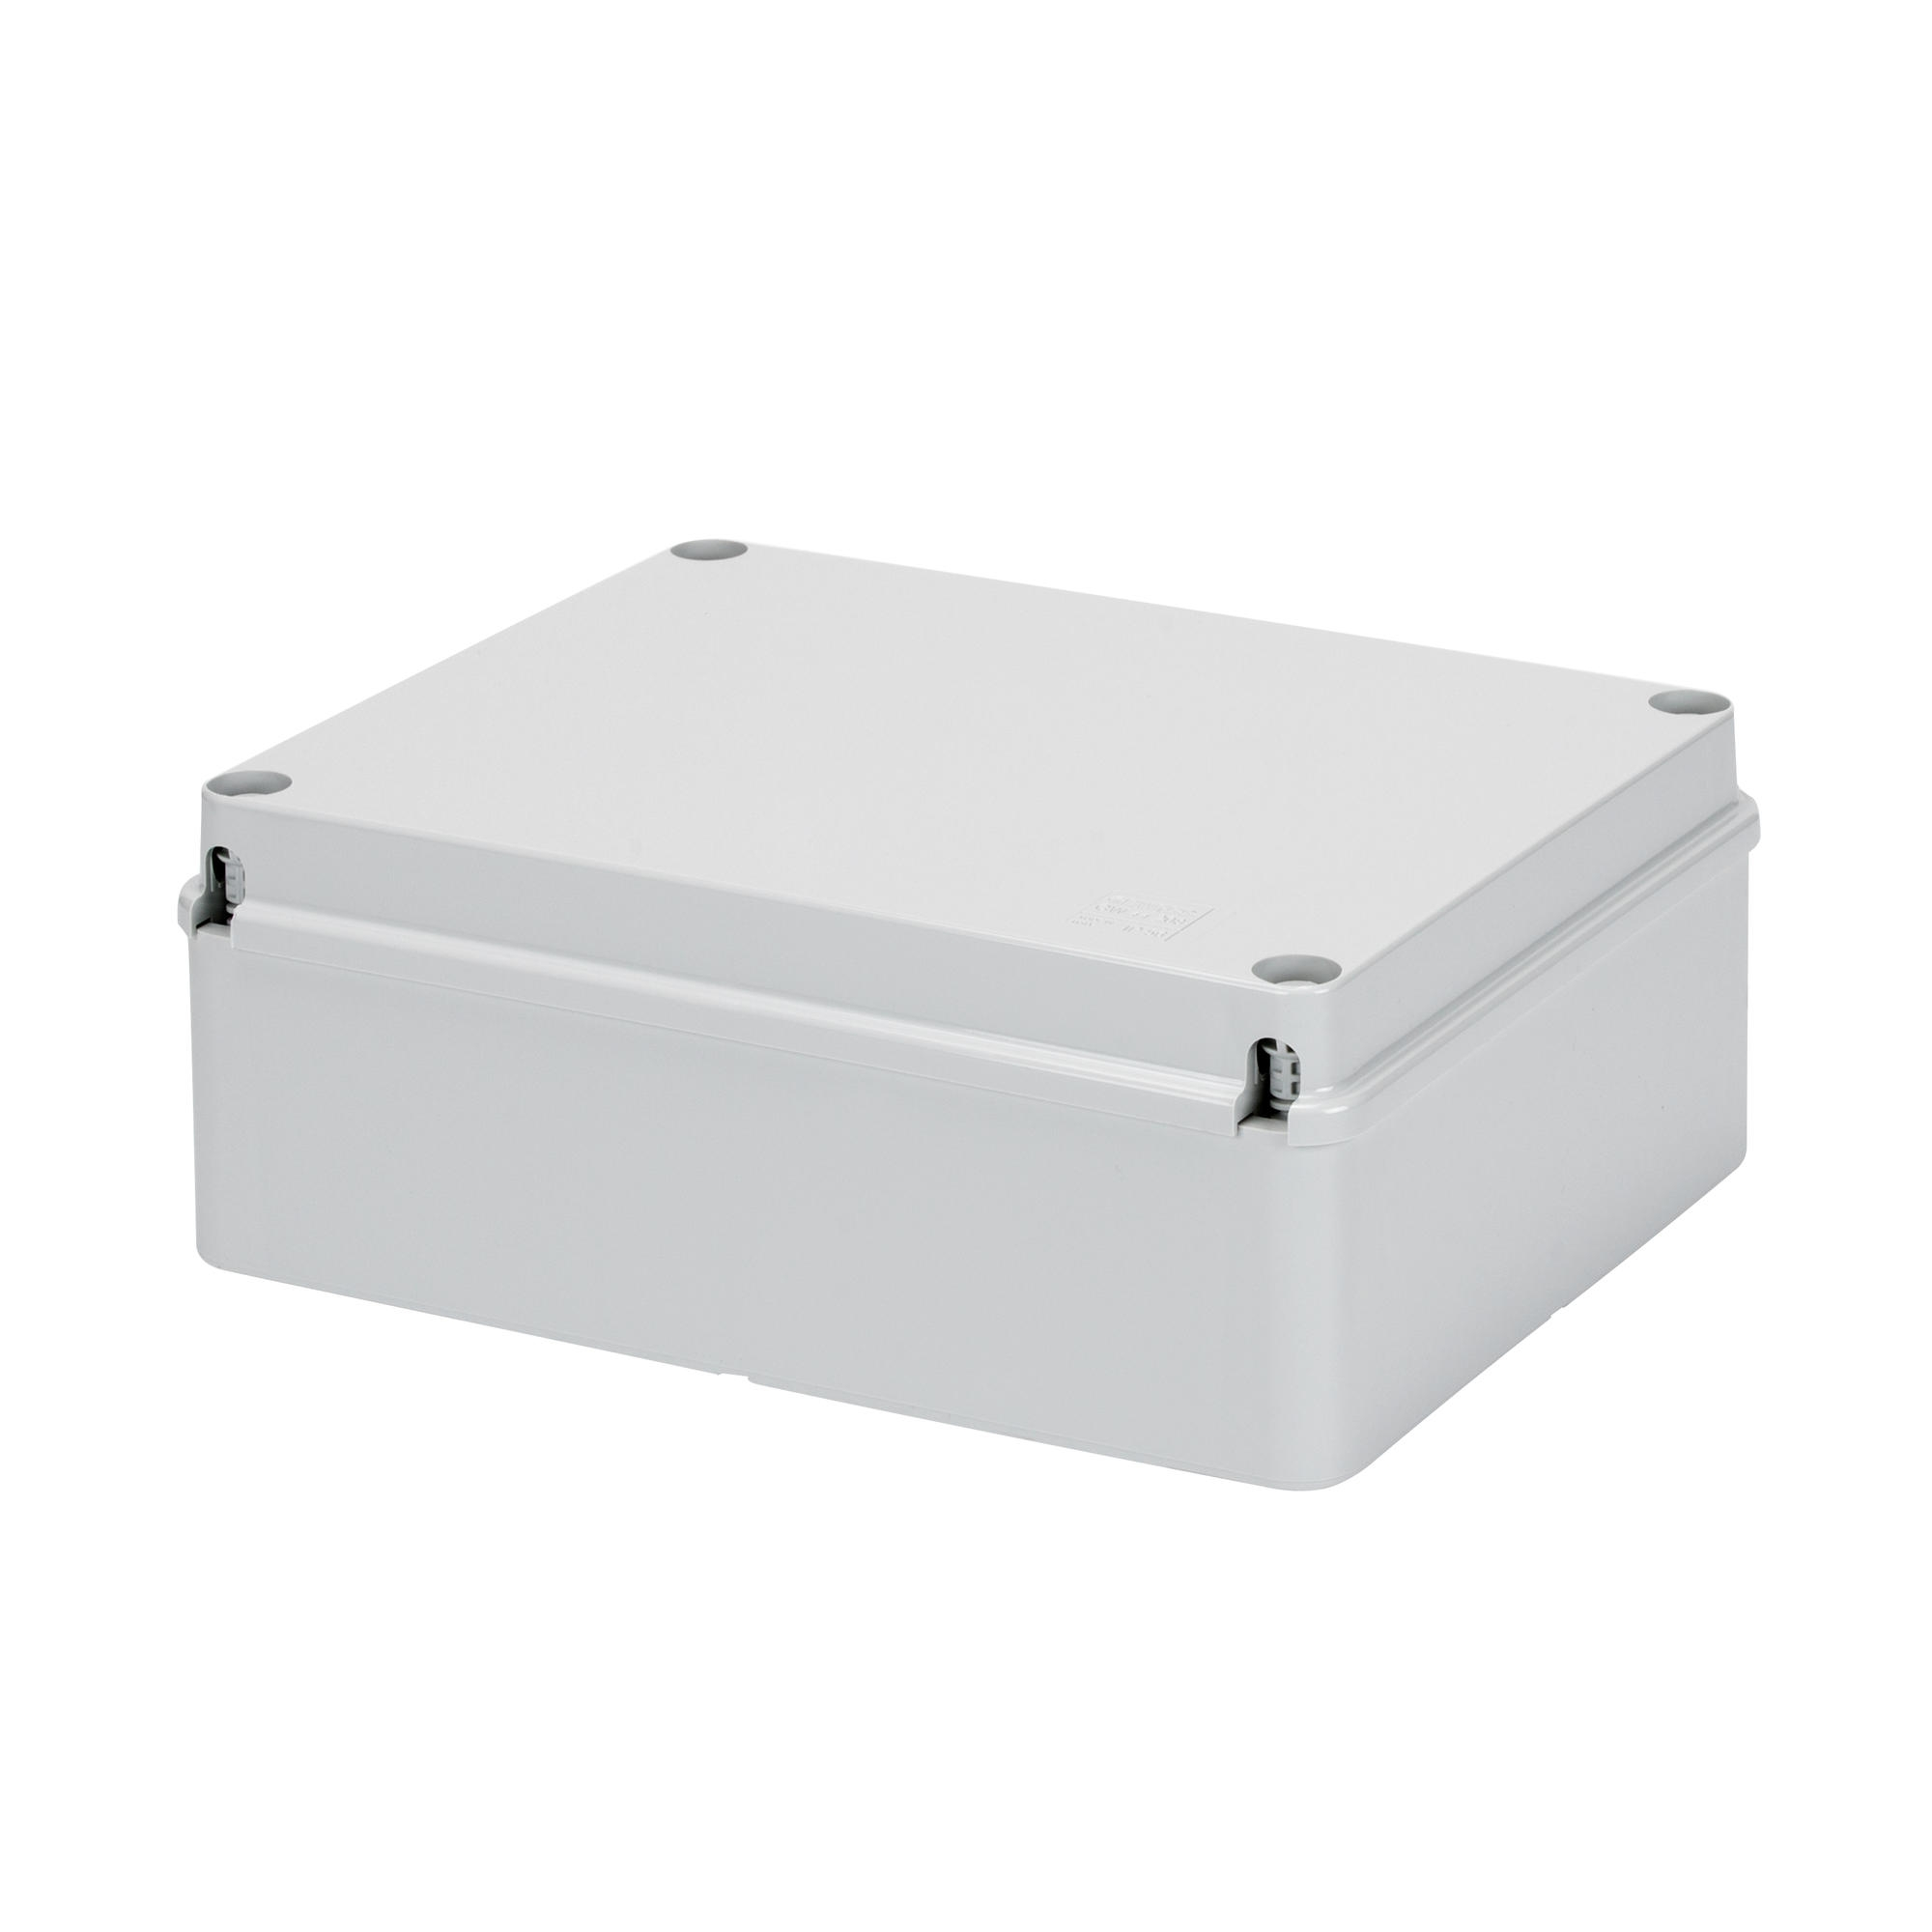 GW44207 Gewiss 190x140x70mm Electrical Enclosure/Panel Box IP56 Rated